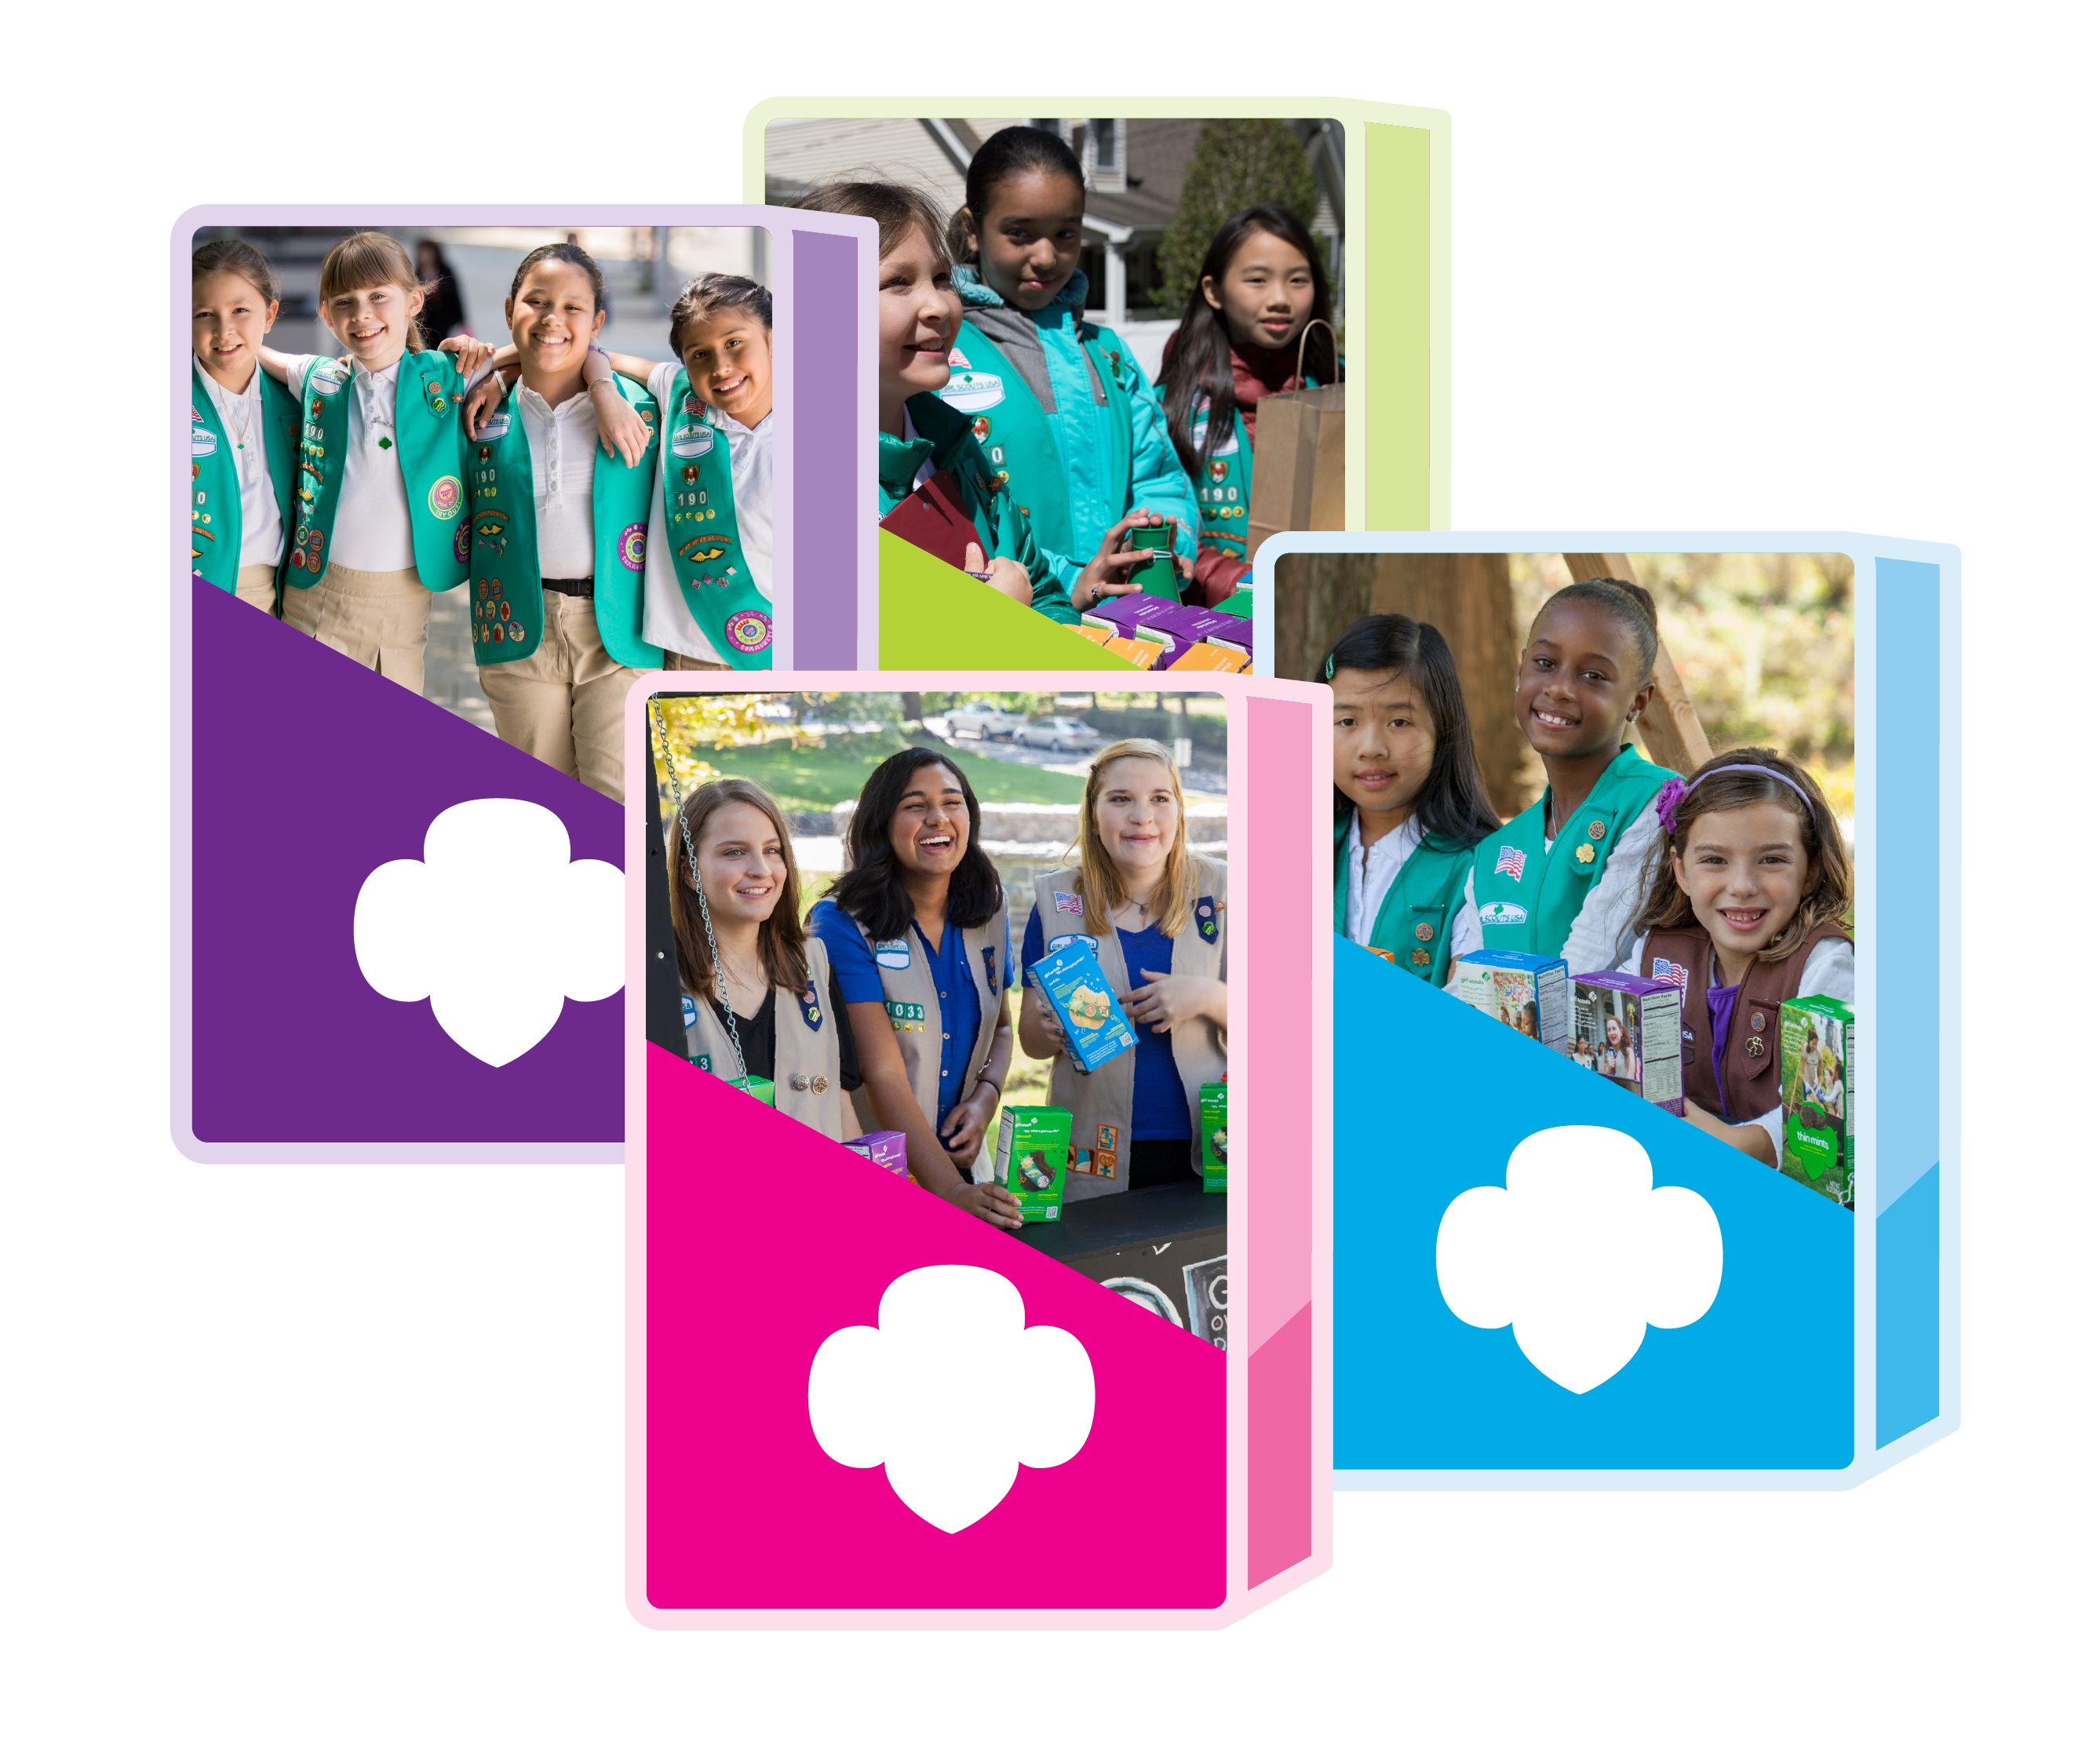 For Cookie Sellers on cookie bags, cookie forms transfer forms, pa girl scout cookie form, cookie clipart, cookie feedback form, cookie recipes, girl scouts cookie permission form, printable girl scout cookie form, cookie models,